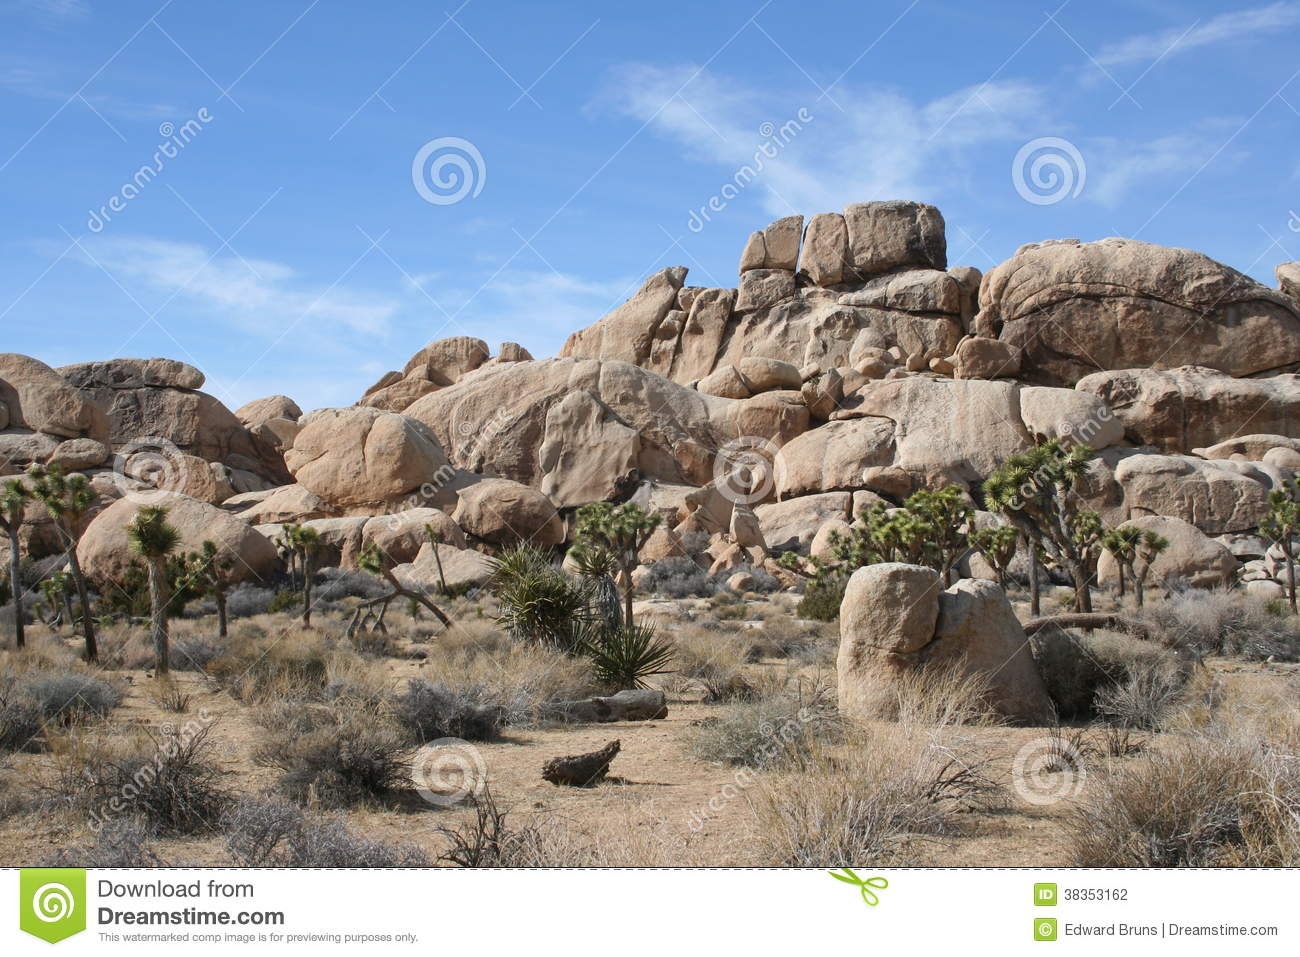 Outside Plants Joshua Tree National Park Desert Landscape Stock